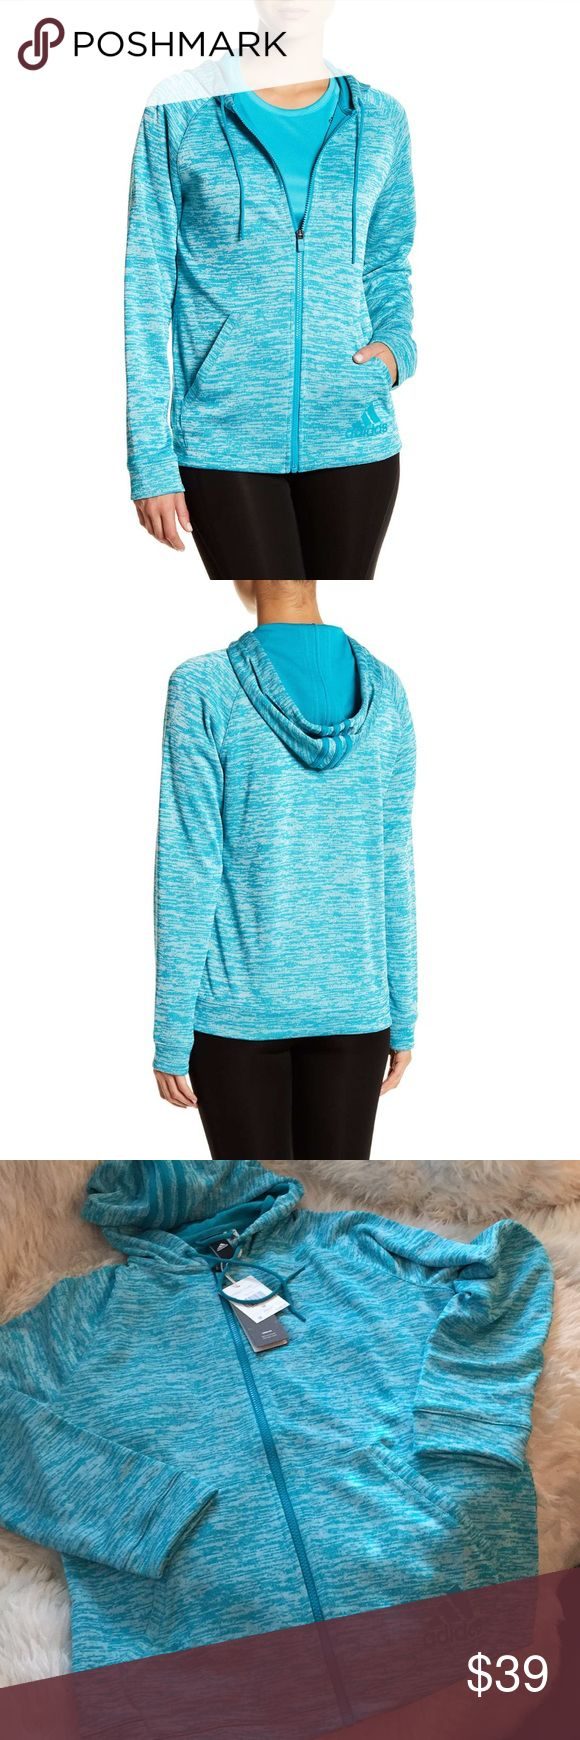 Adidas zip hoodie Ladies relaxed fit hoodie. Style 2street fz hdy. Color teal. adidas Tops Sweatshirts & Hoodies